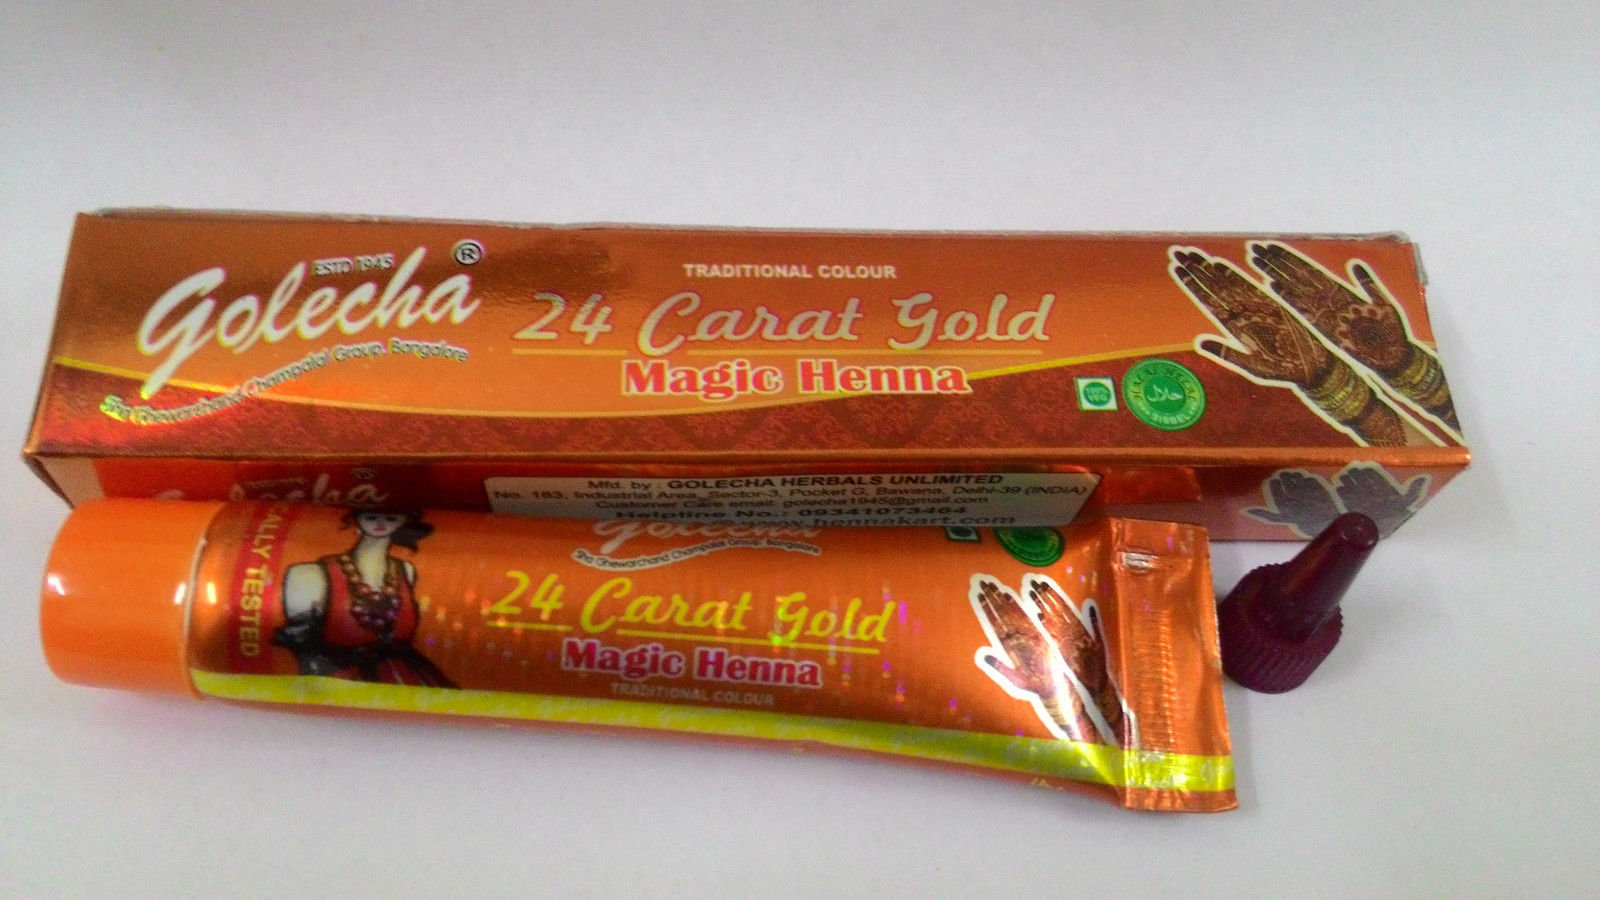 buy Golecha 24 Carat Gold Magic Henna Orange Tubes (Pack of 12) in UK & USA